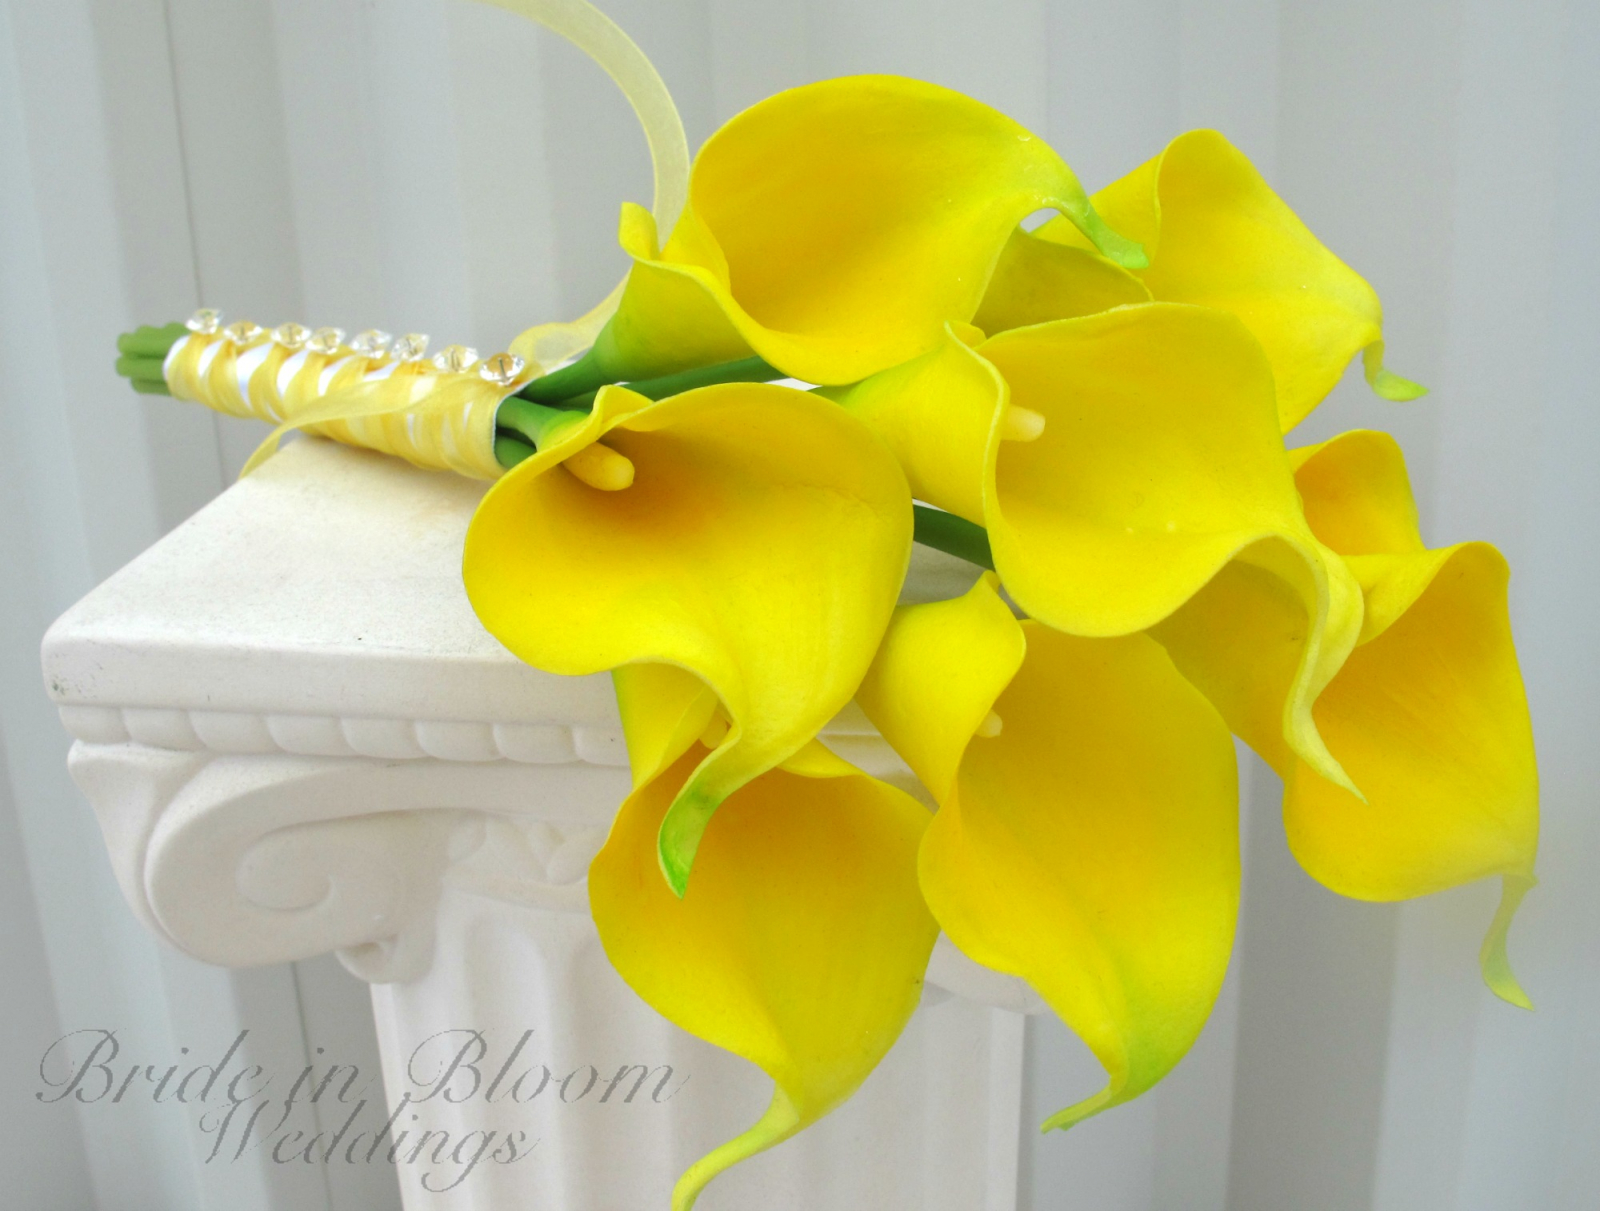 yellow calla lily wedding bouquet bride in bloom. Black Bedroom Furniture Sets. Home Design Ideas